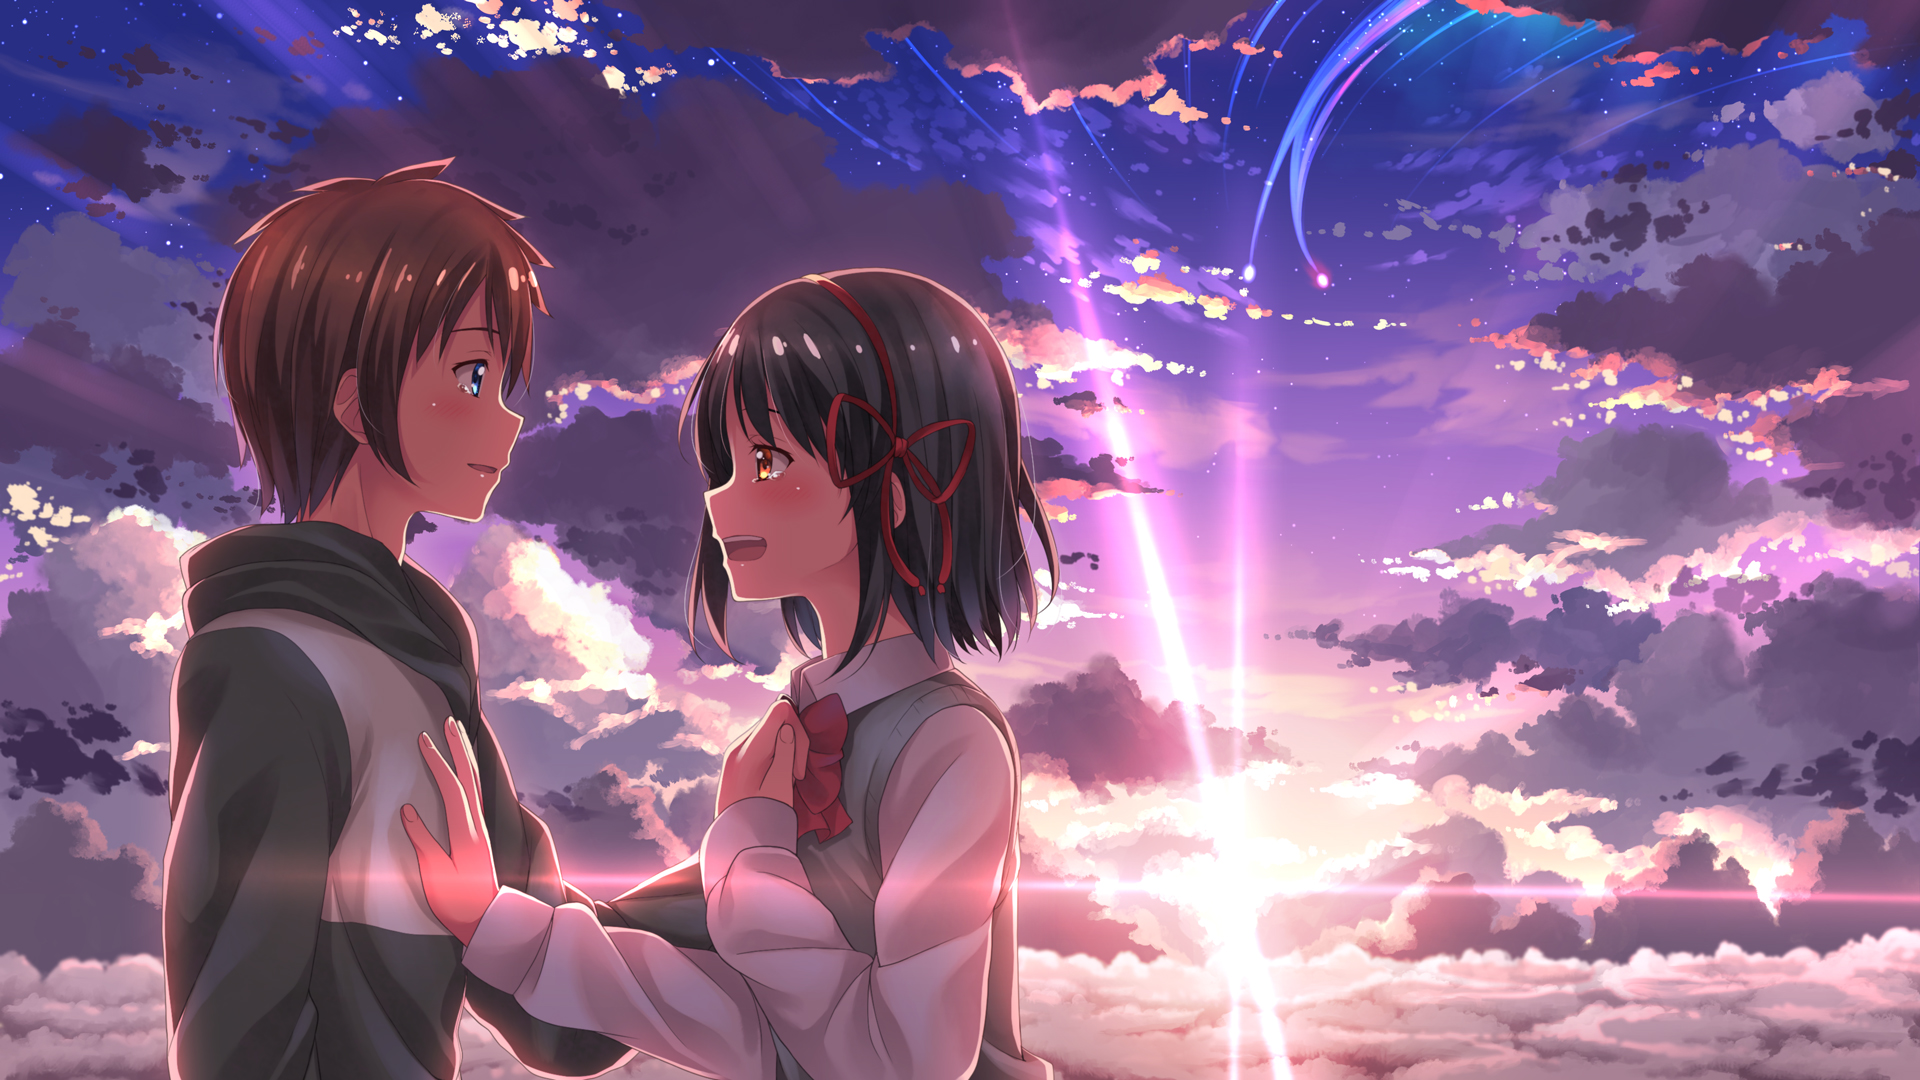 Kimi No Na Wa Your Name Hd Wallpaper 2037245 Zerochan Anime